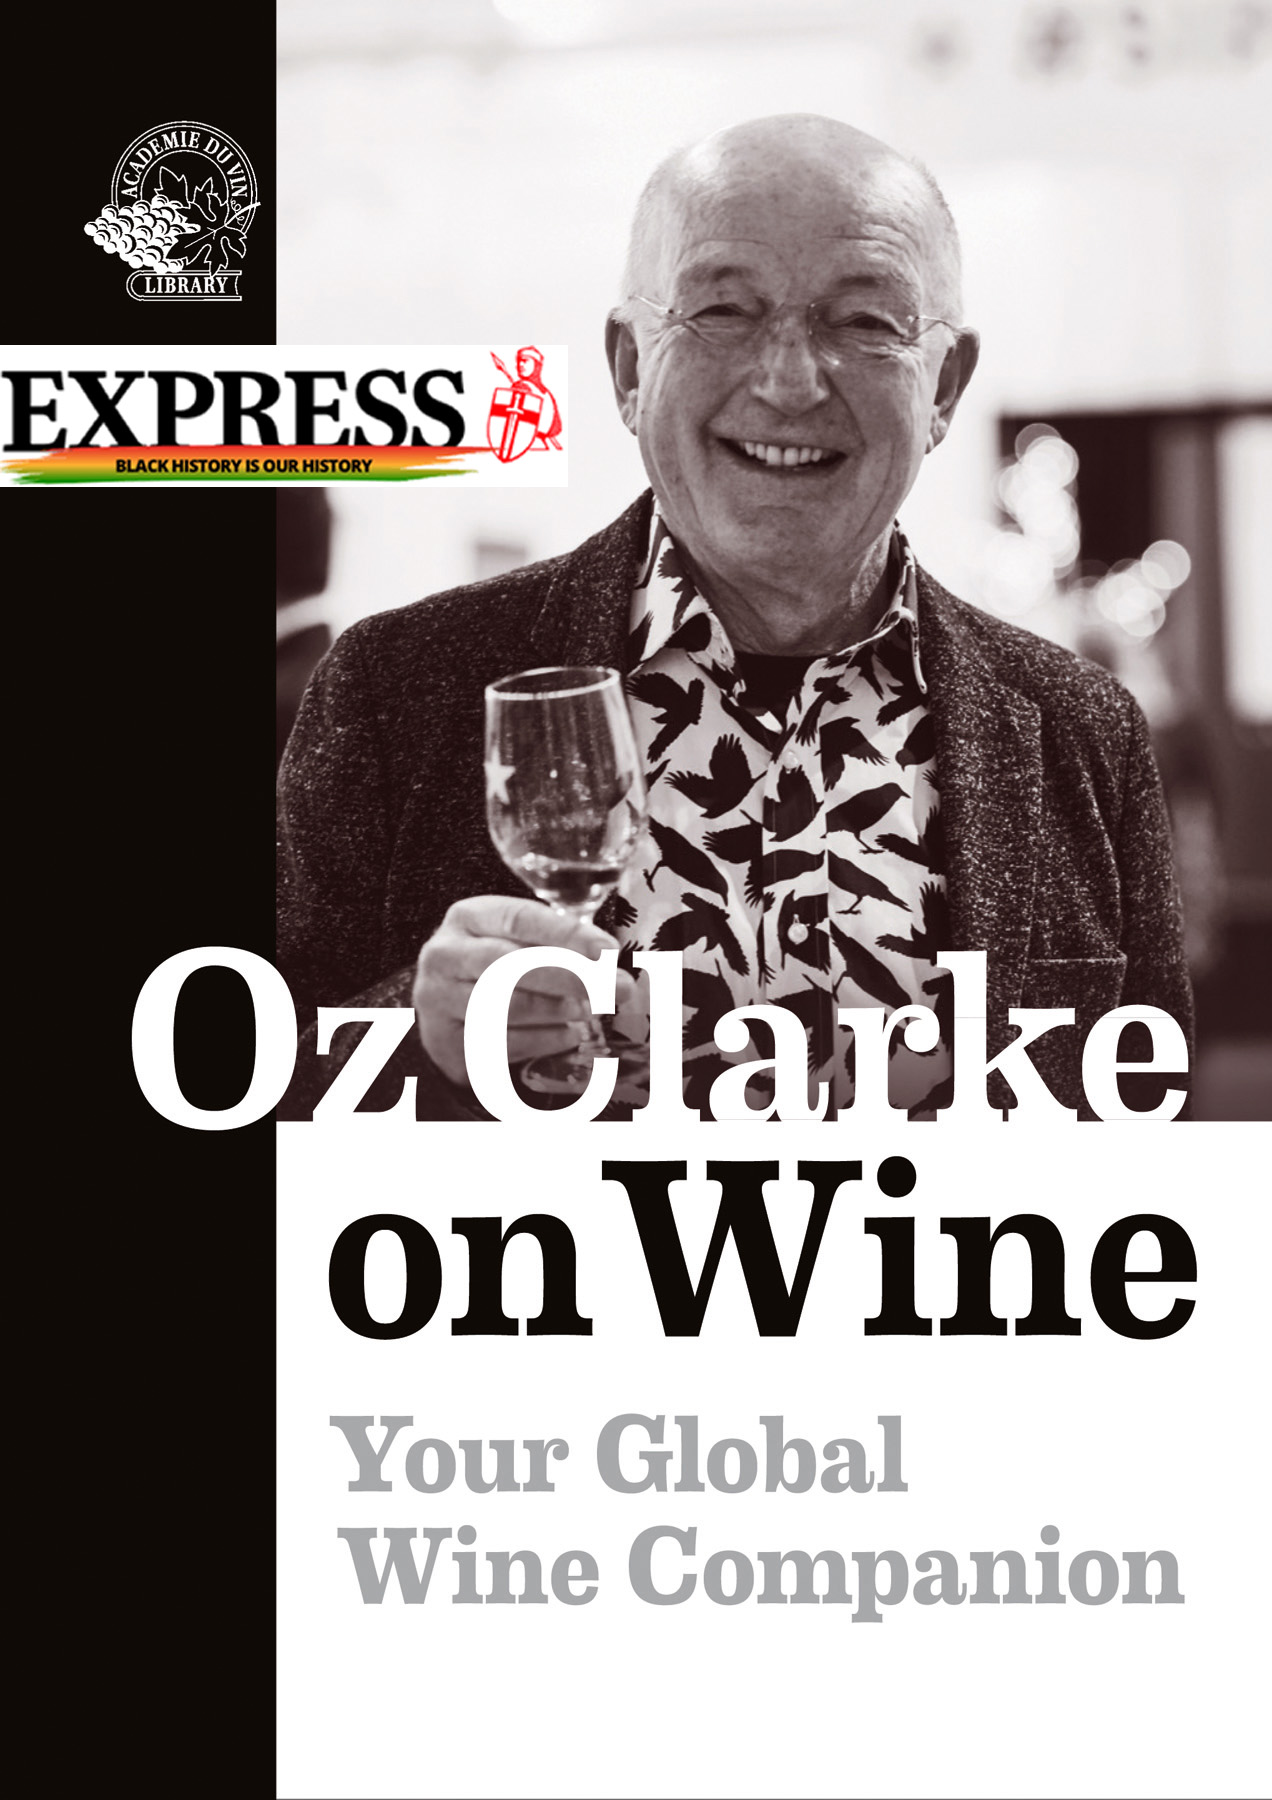 Oz Clarke's most authoritative and definitive, yet also his most personal wine book ever. This book, and Oz, really are your personal wine guides.